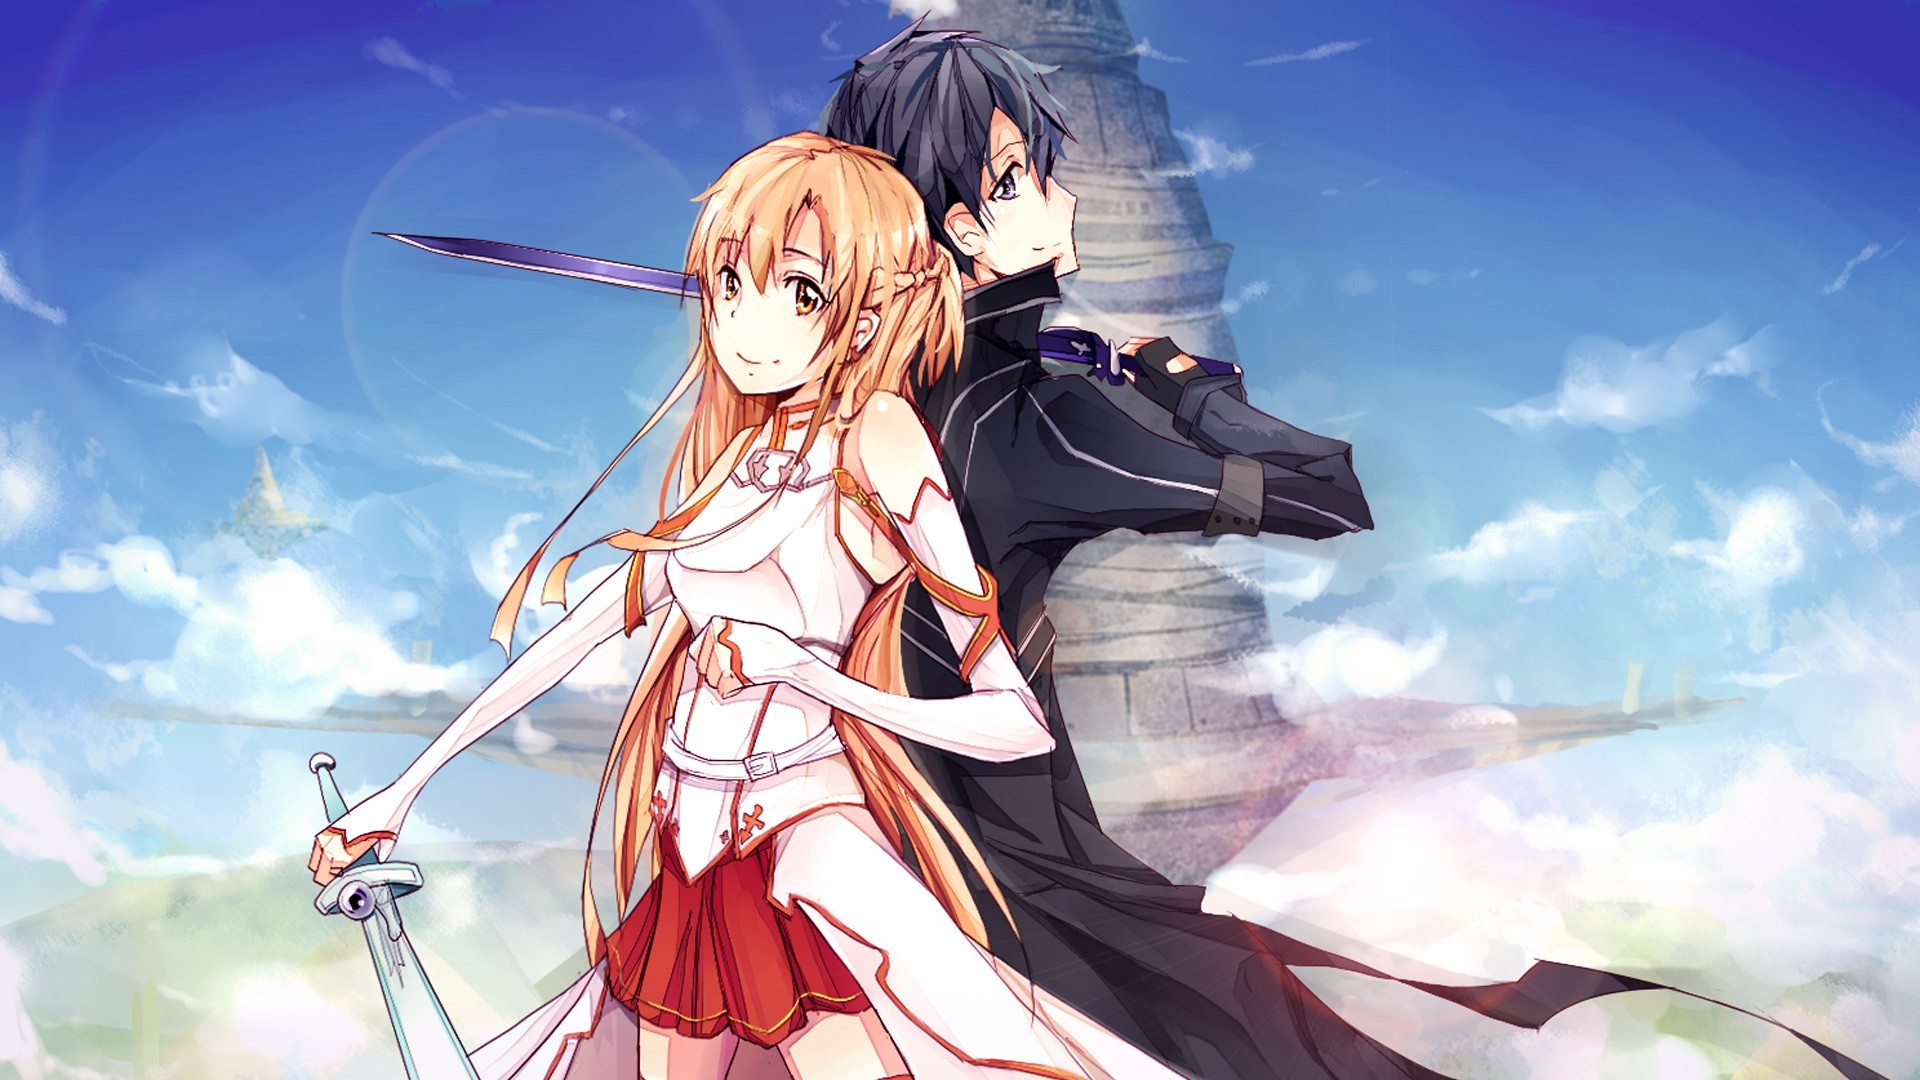 1920x1080 Sword Art Online Fans Images HD Wallpaper And Background Photos